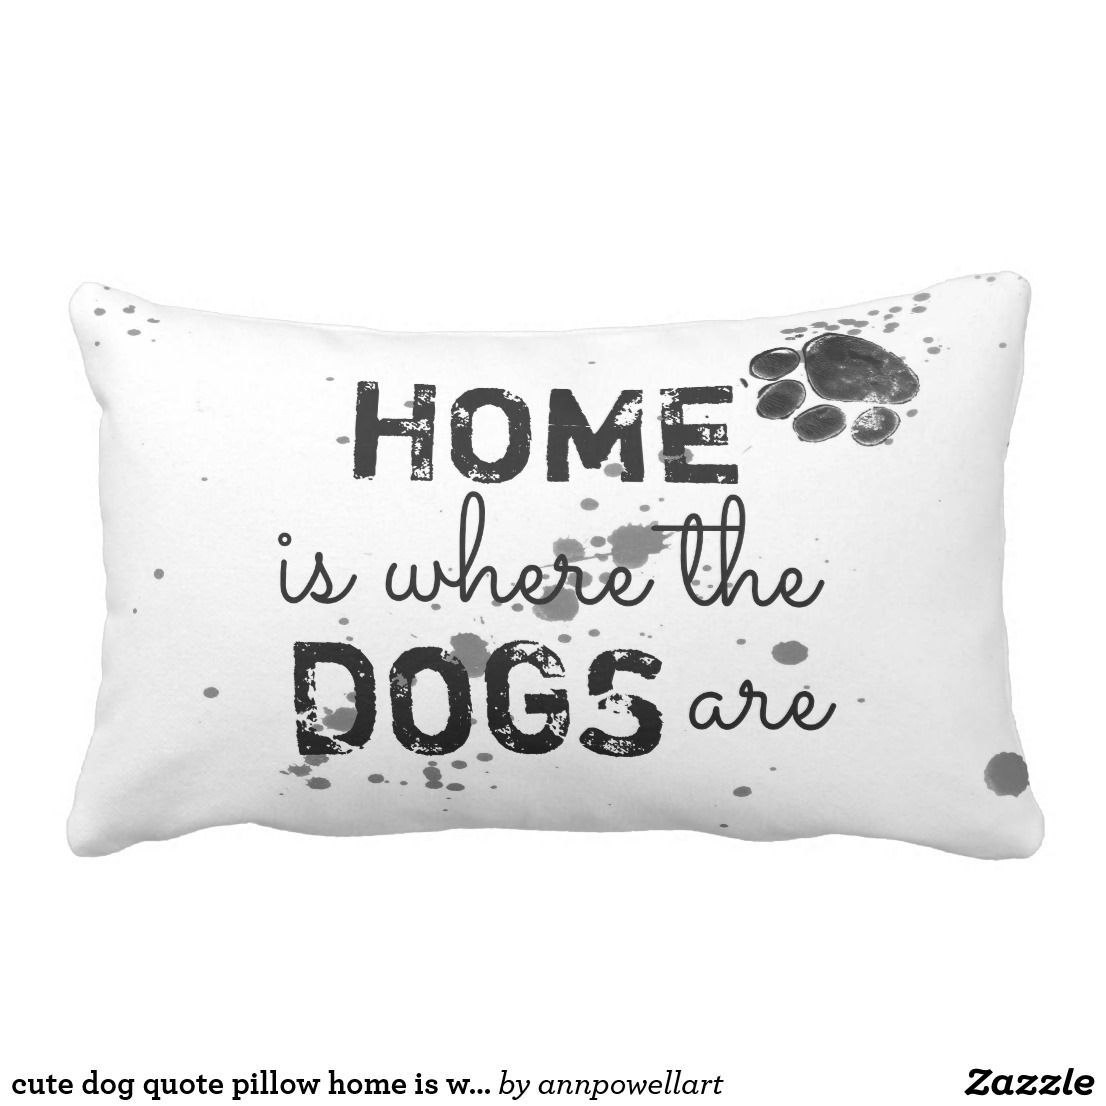 Cute Dog Quote Pillow Home Is Where The Dogs Are Zazzle Com Pillows Cute Dog Quotes Camping Pillows